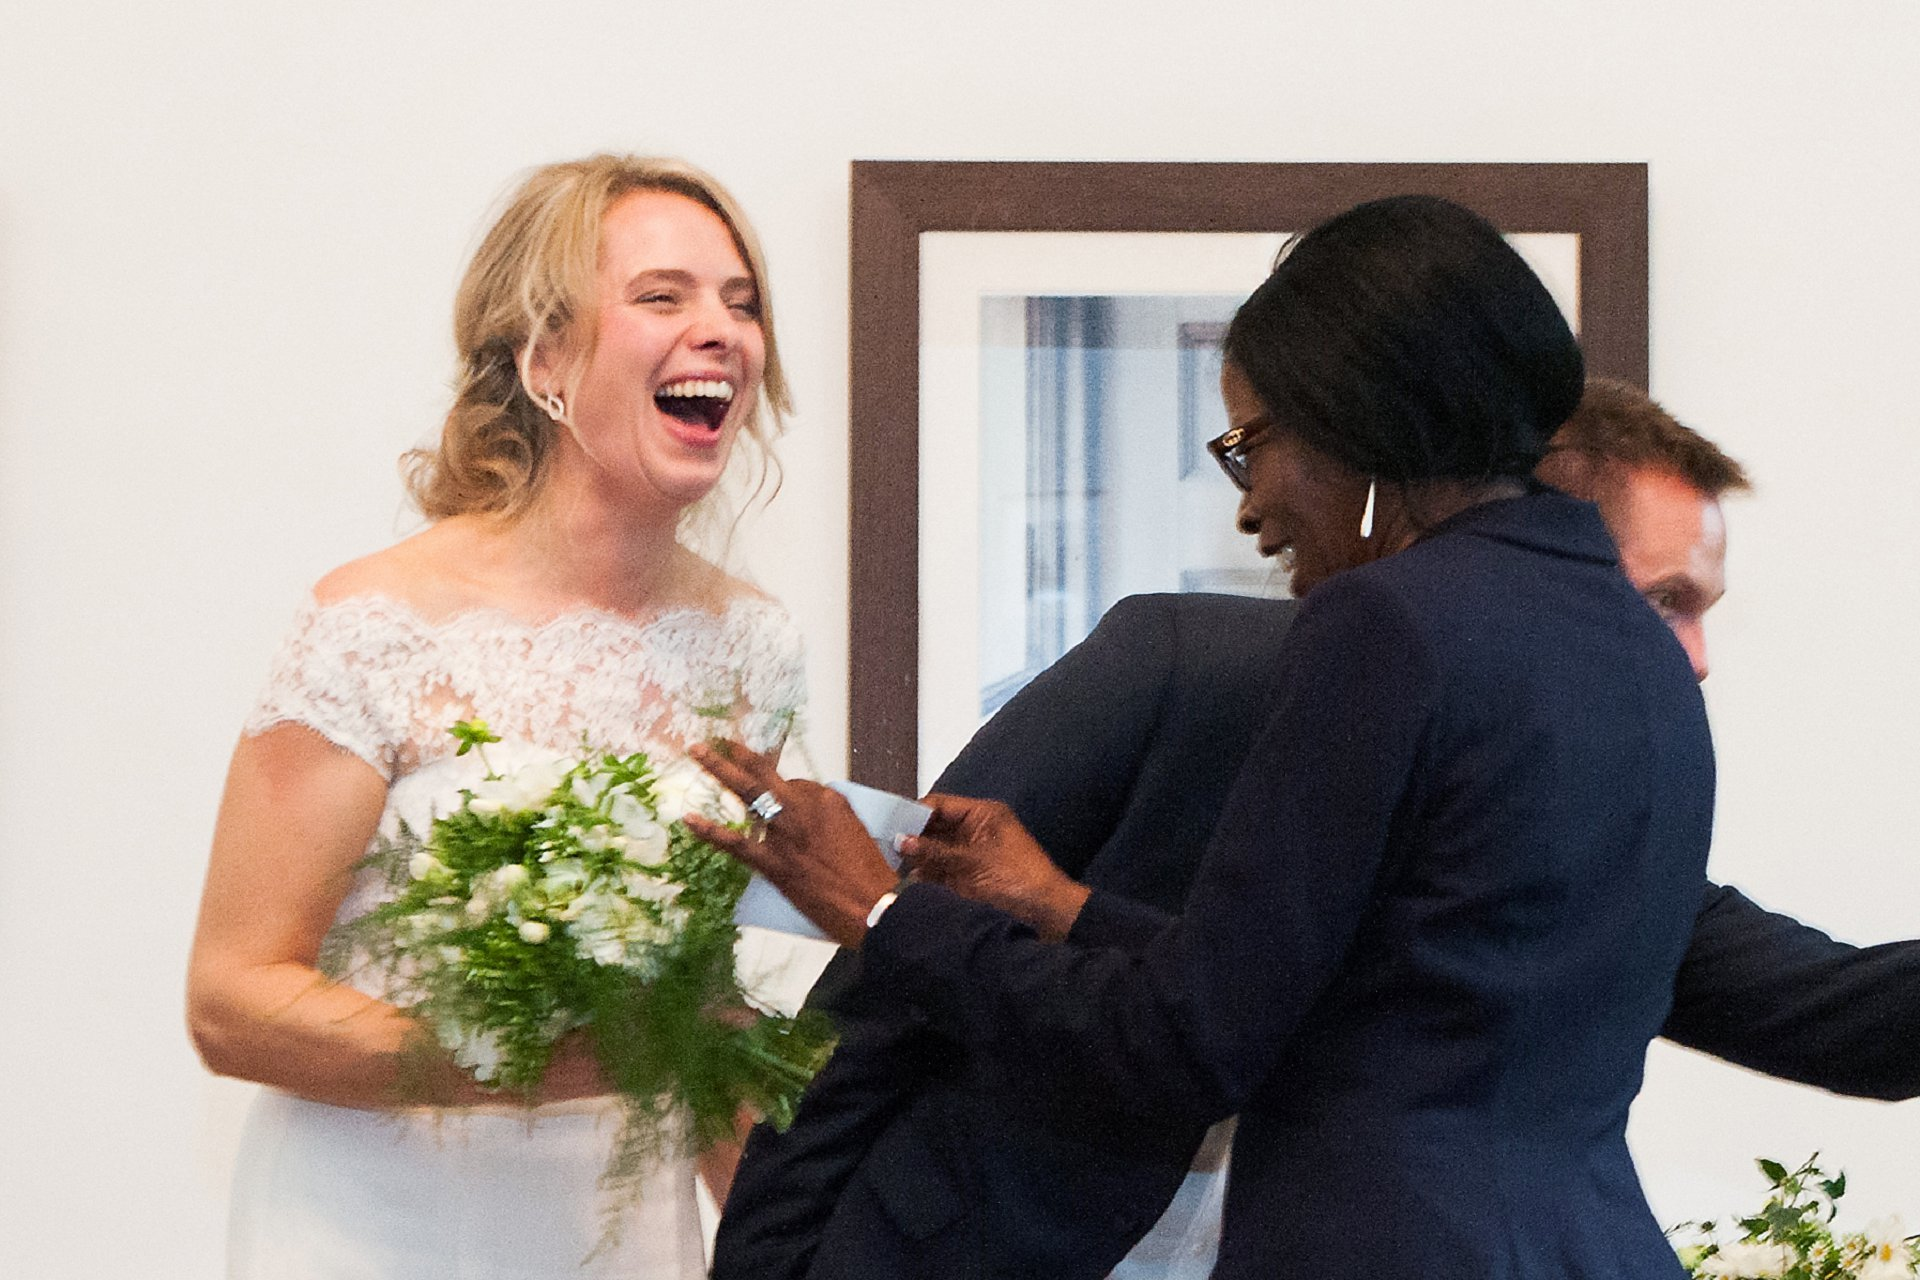 The Hammersmith & Fulham Registry Office registrar makes teh bride laugh as she hands her the marriage certificate